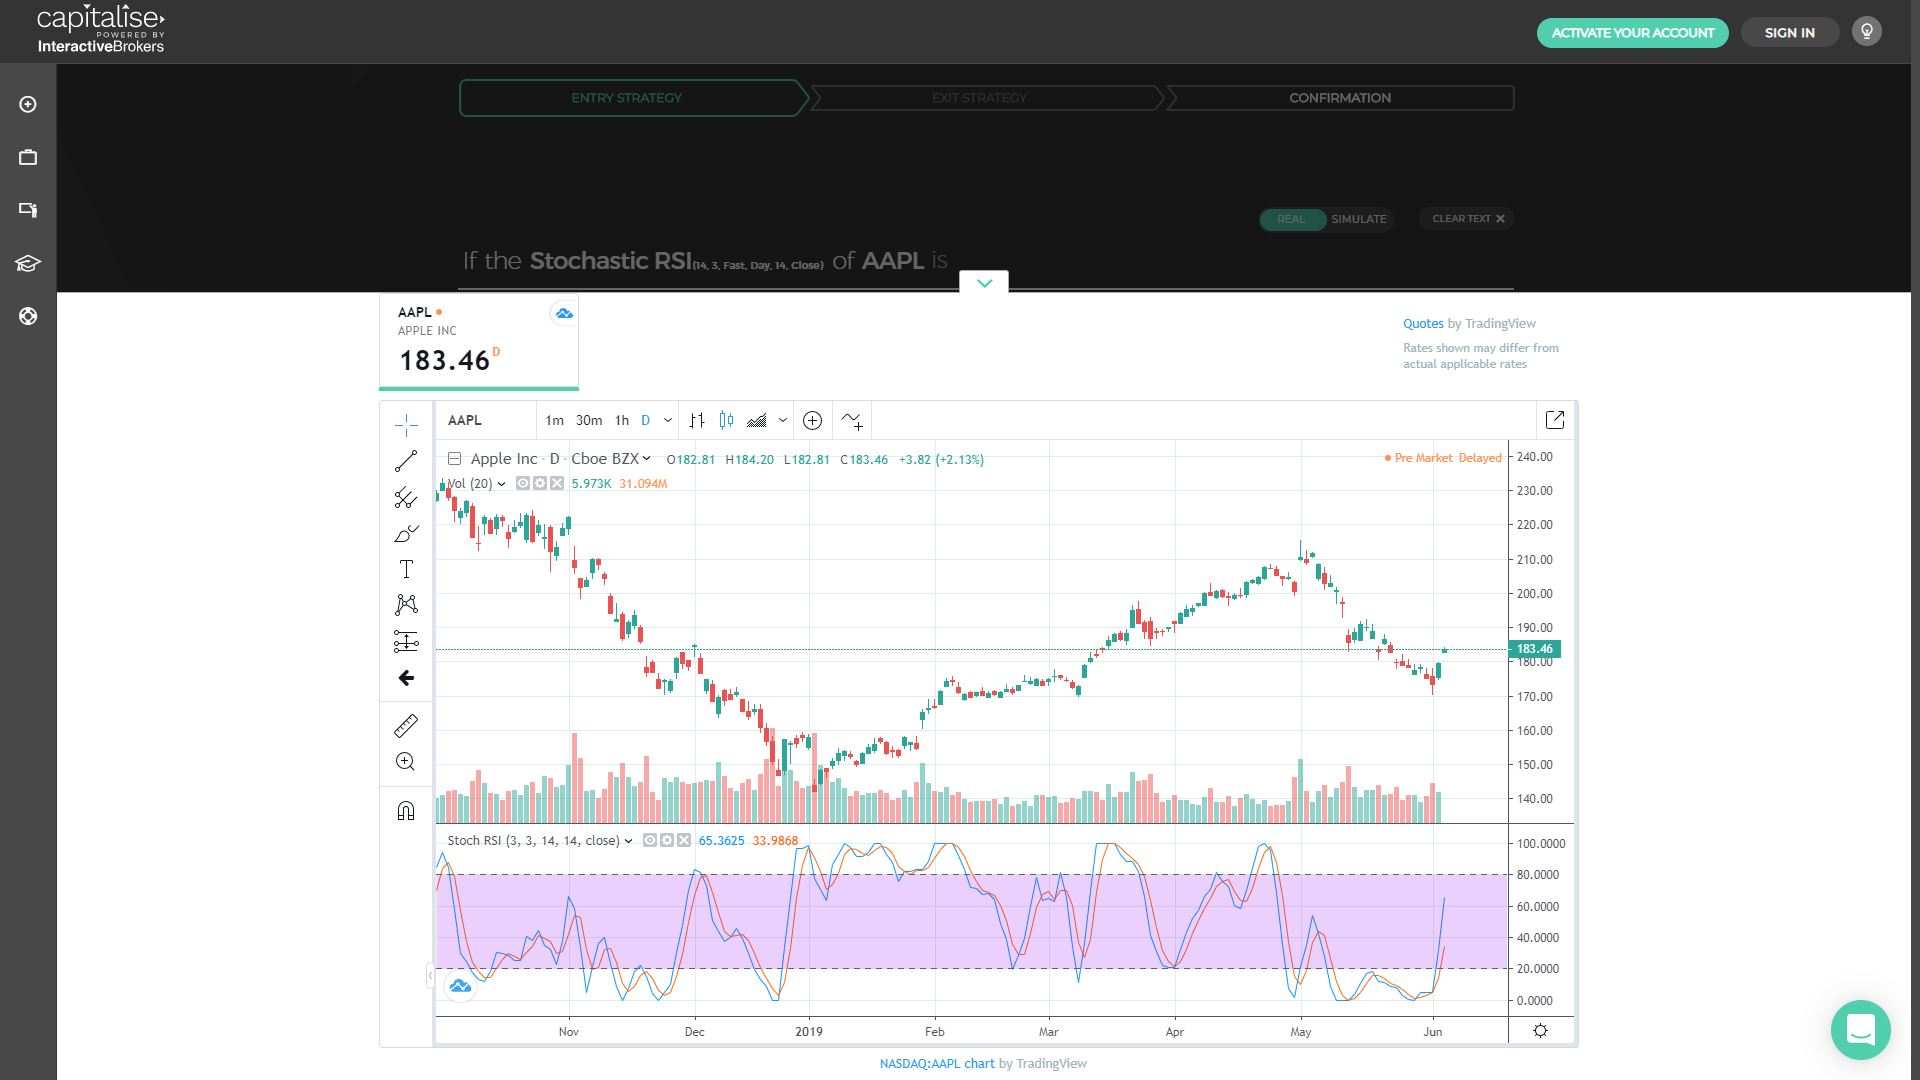 Indicator Mashup: The Stochastic RSI | Capitalise